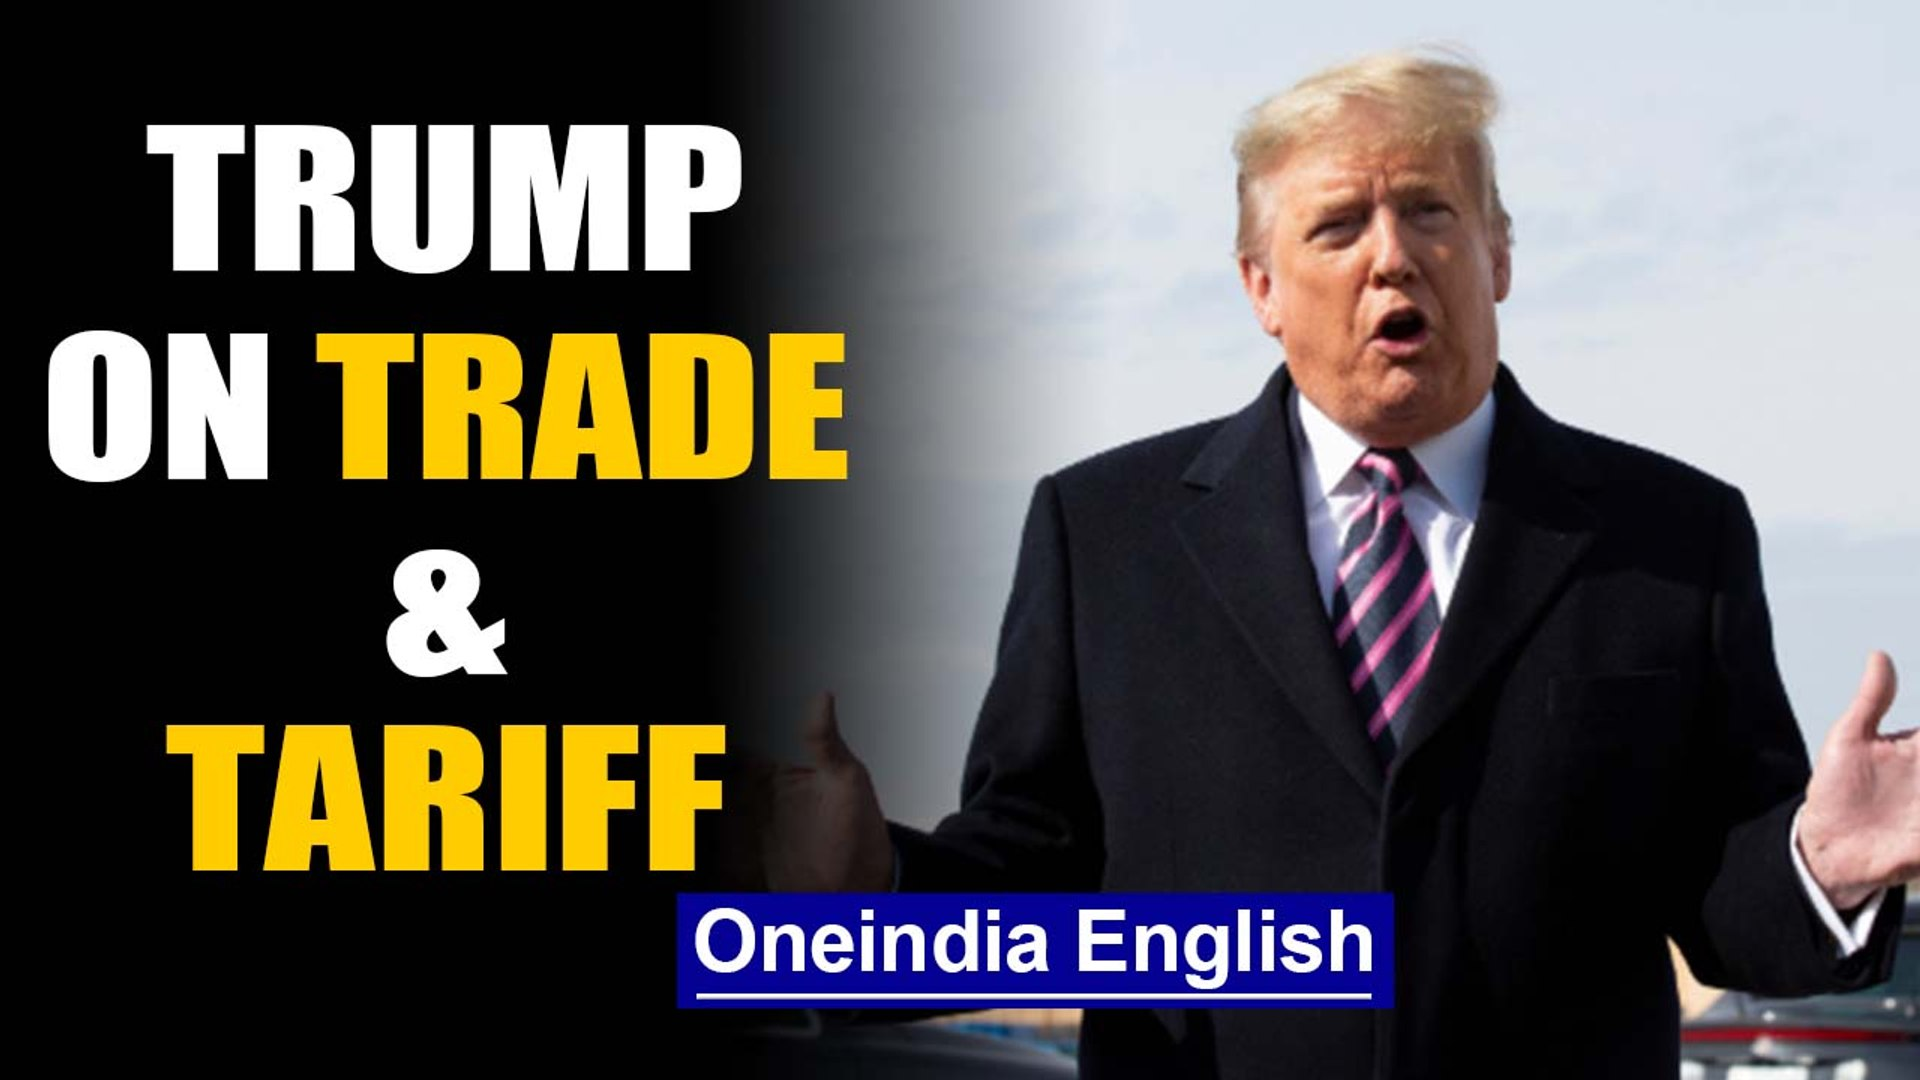 Trump complains about Indian tariffs, 'have been hit very hard' | Oneindia News